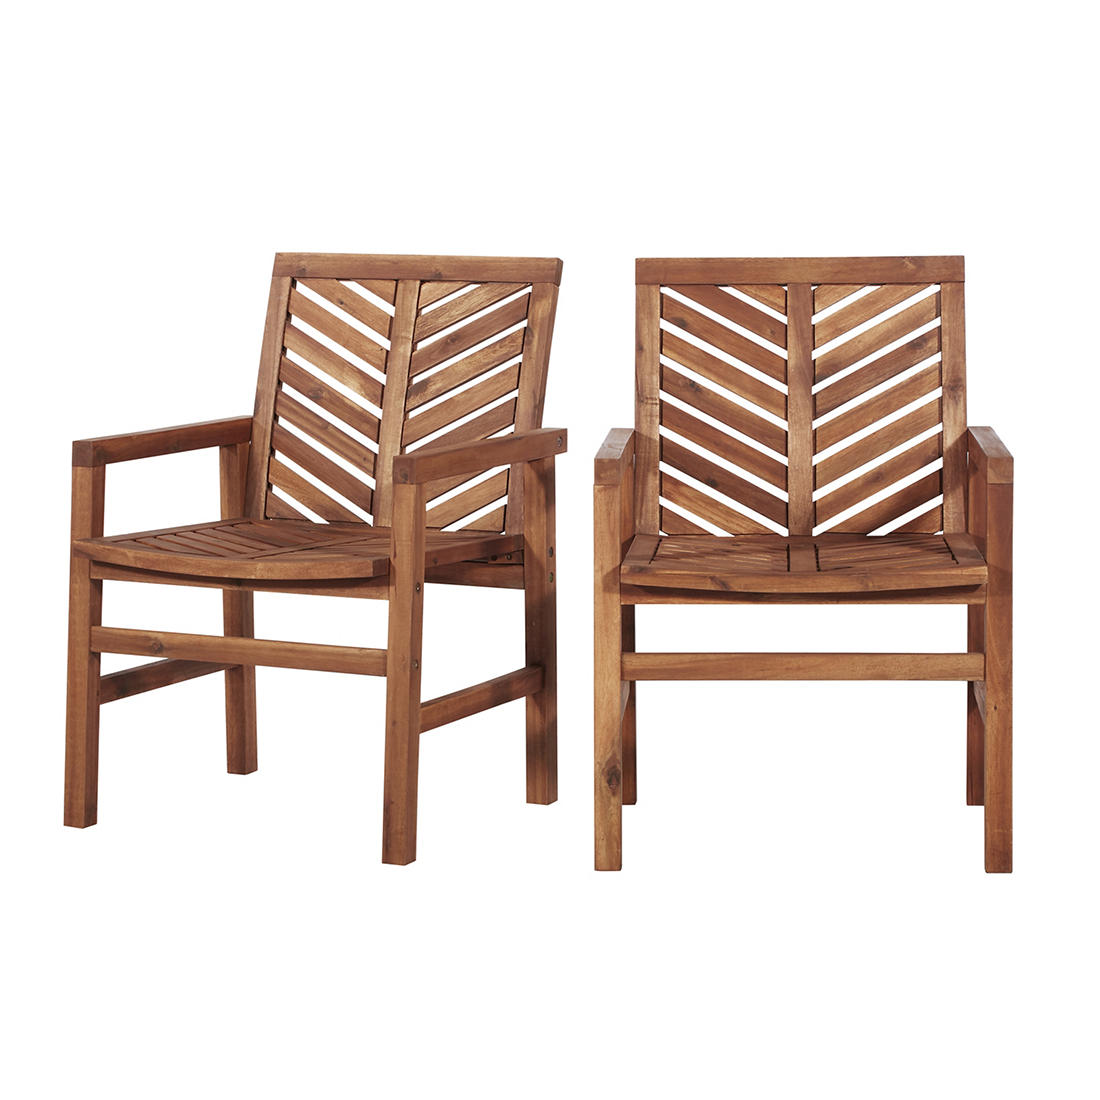 Admirable W Trends Outdoor Acacia Wood Patio Chair Natural Bjs Home Interior And Landscaping Palasignezvosmurscom